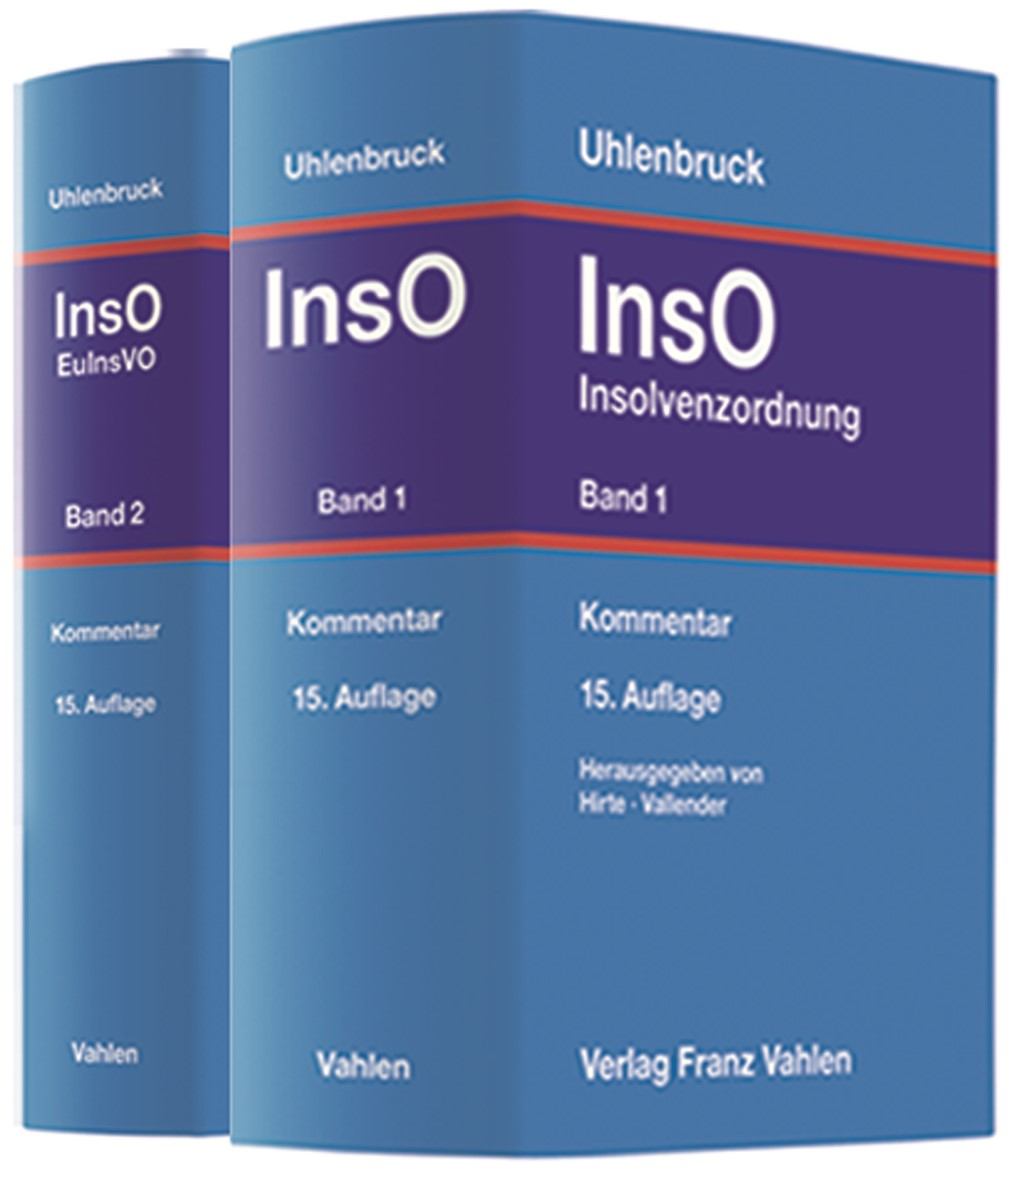 Insolvenzordnung: InsO | Uhlenbruck | 15. Auflage, 2019 | Buch (Cover)